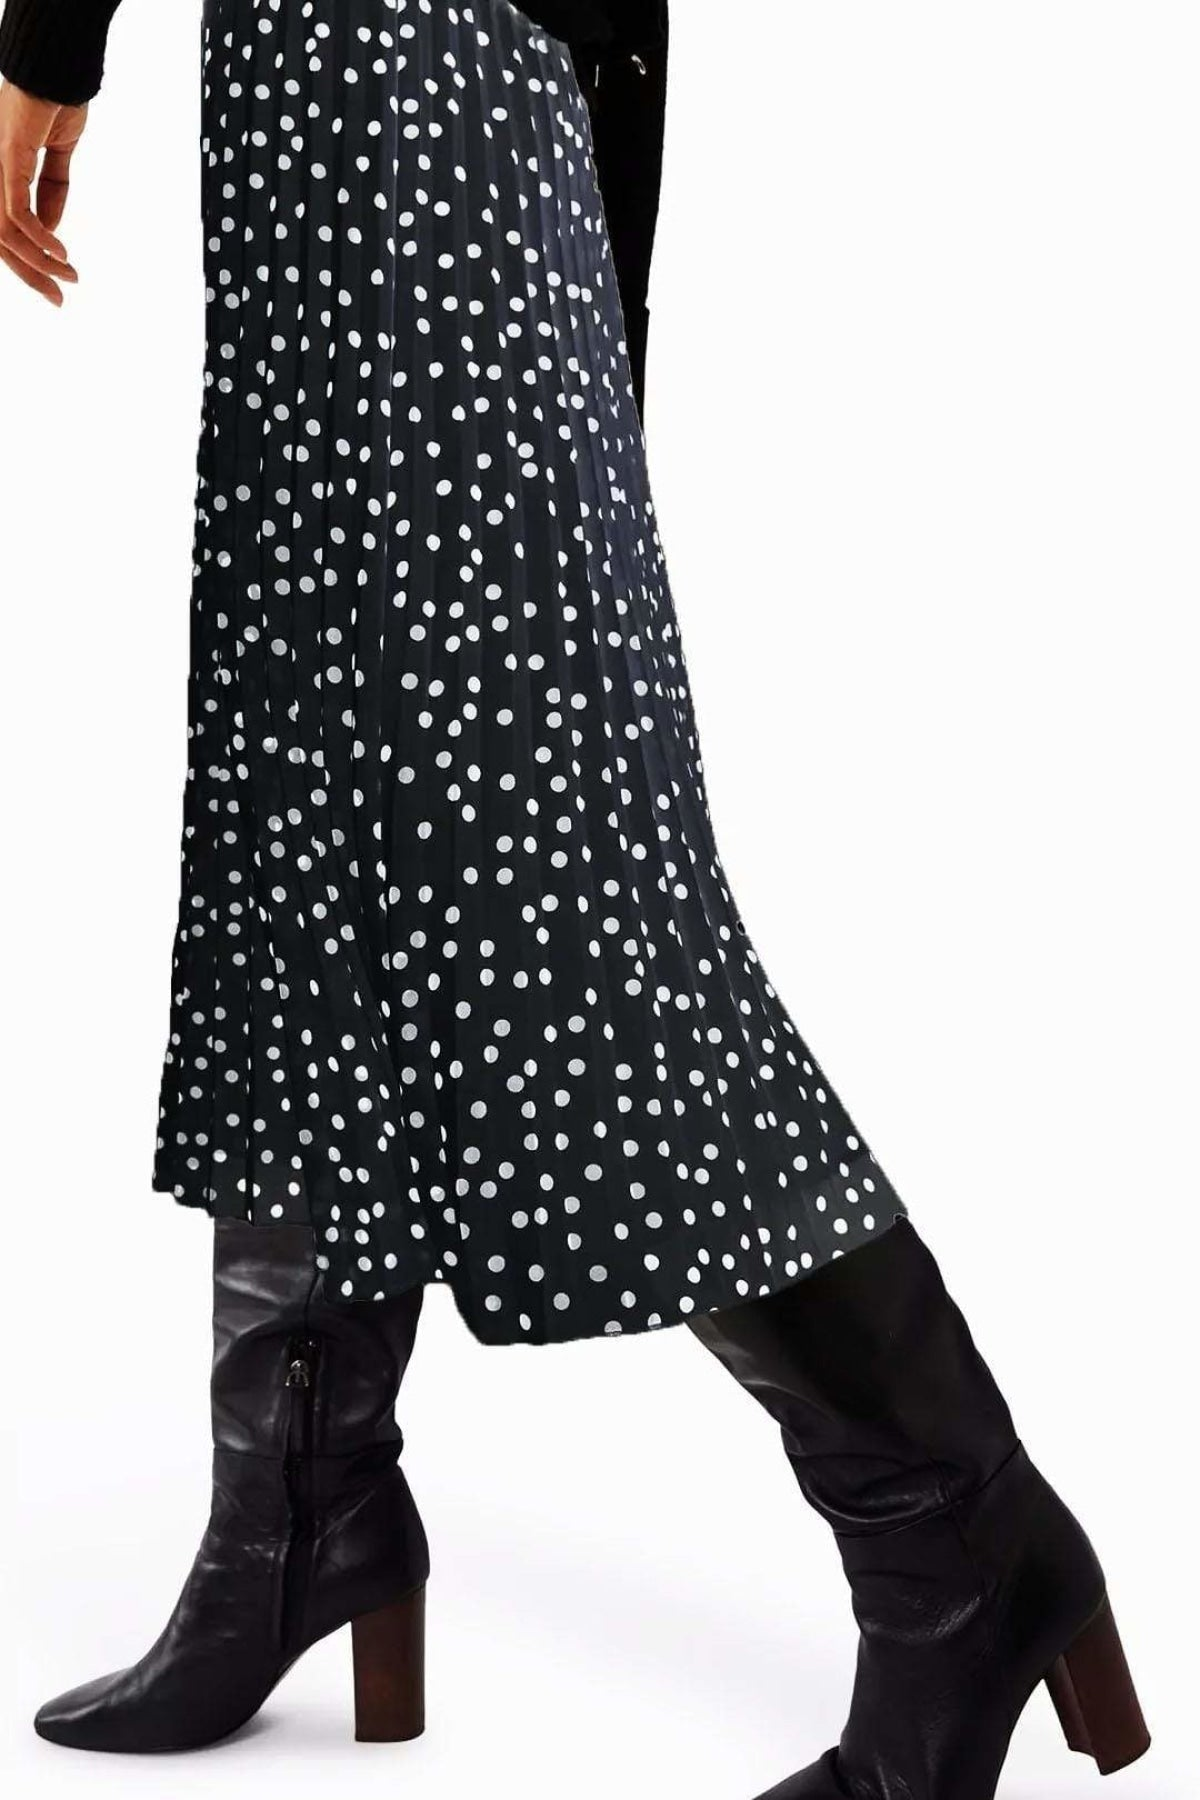 Warehouse Black Spot Pleat Skirt | 14 / Black Spot Secret Label